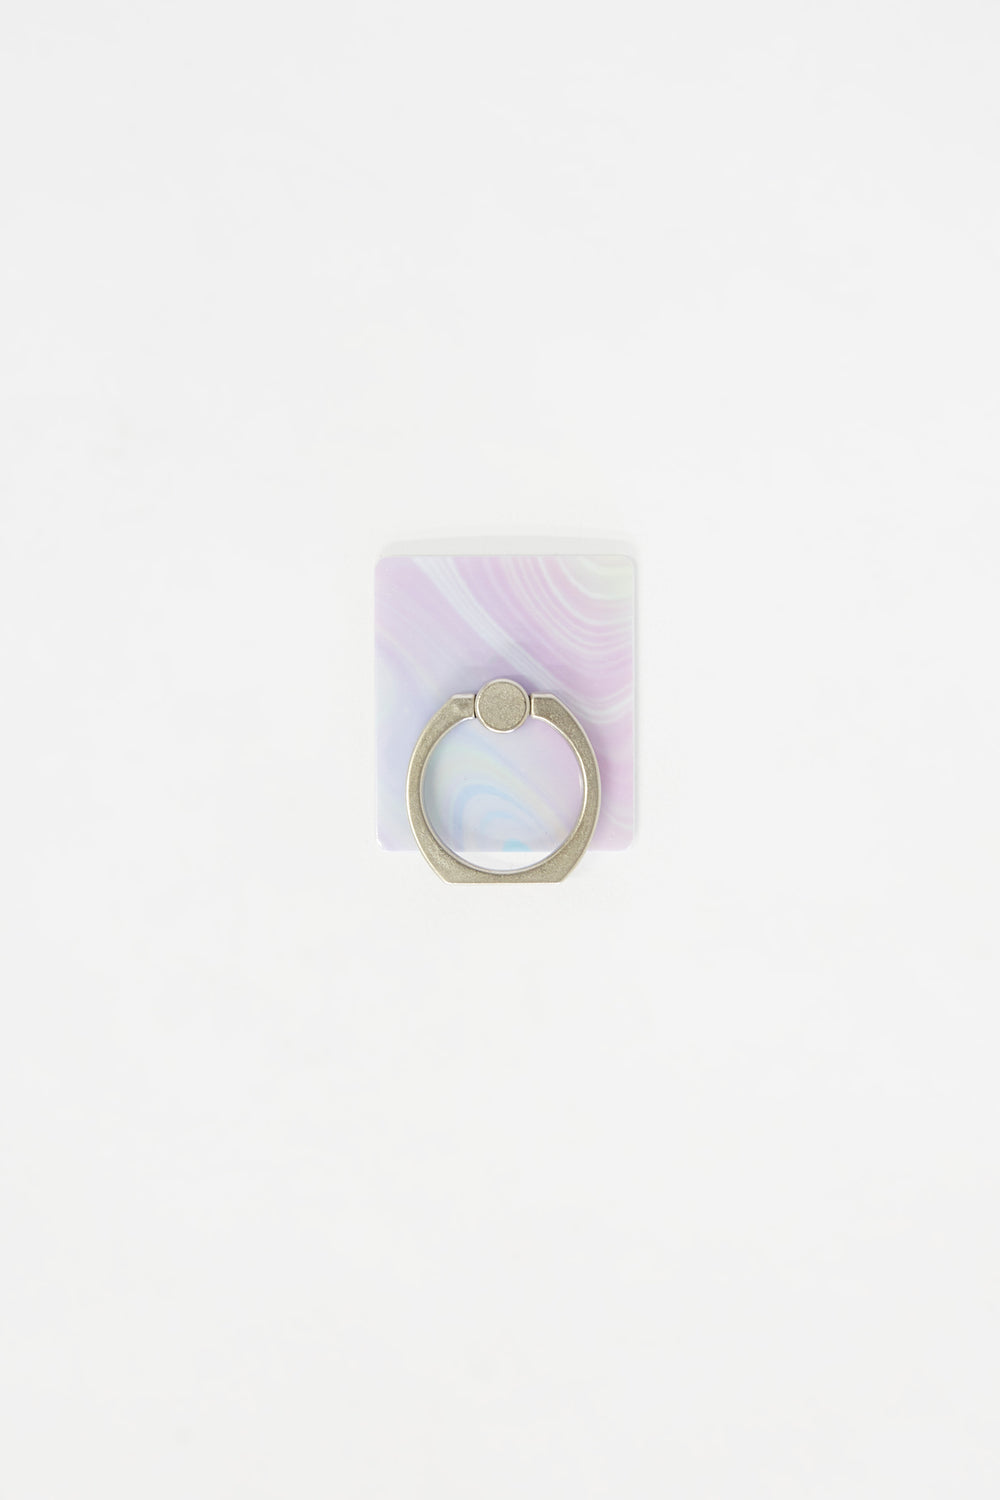 Ring Holder iPhone Case Set Silver